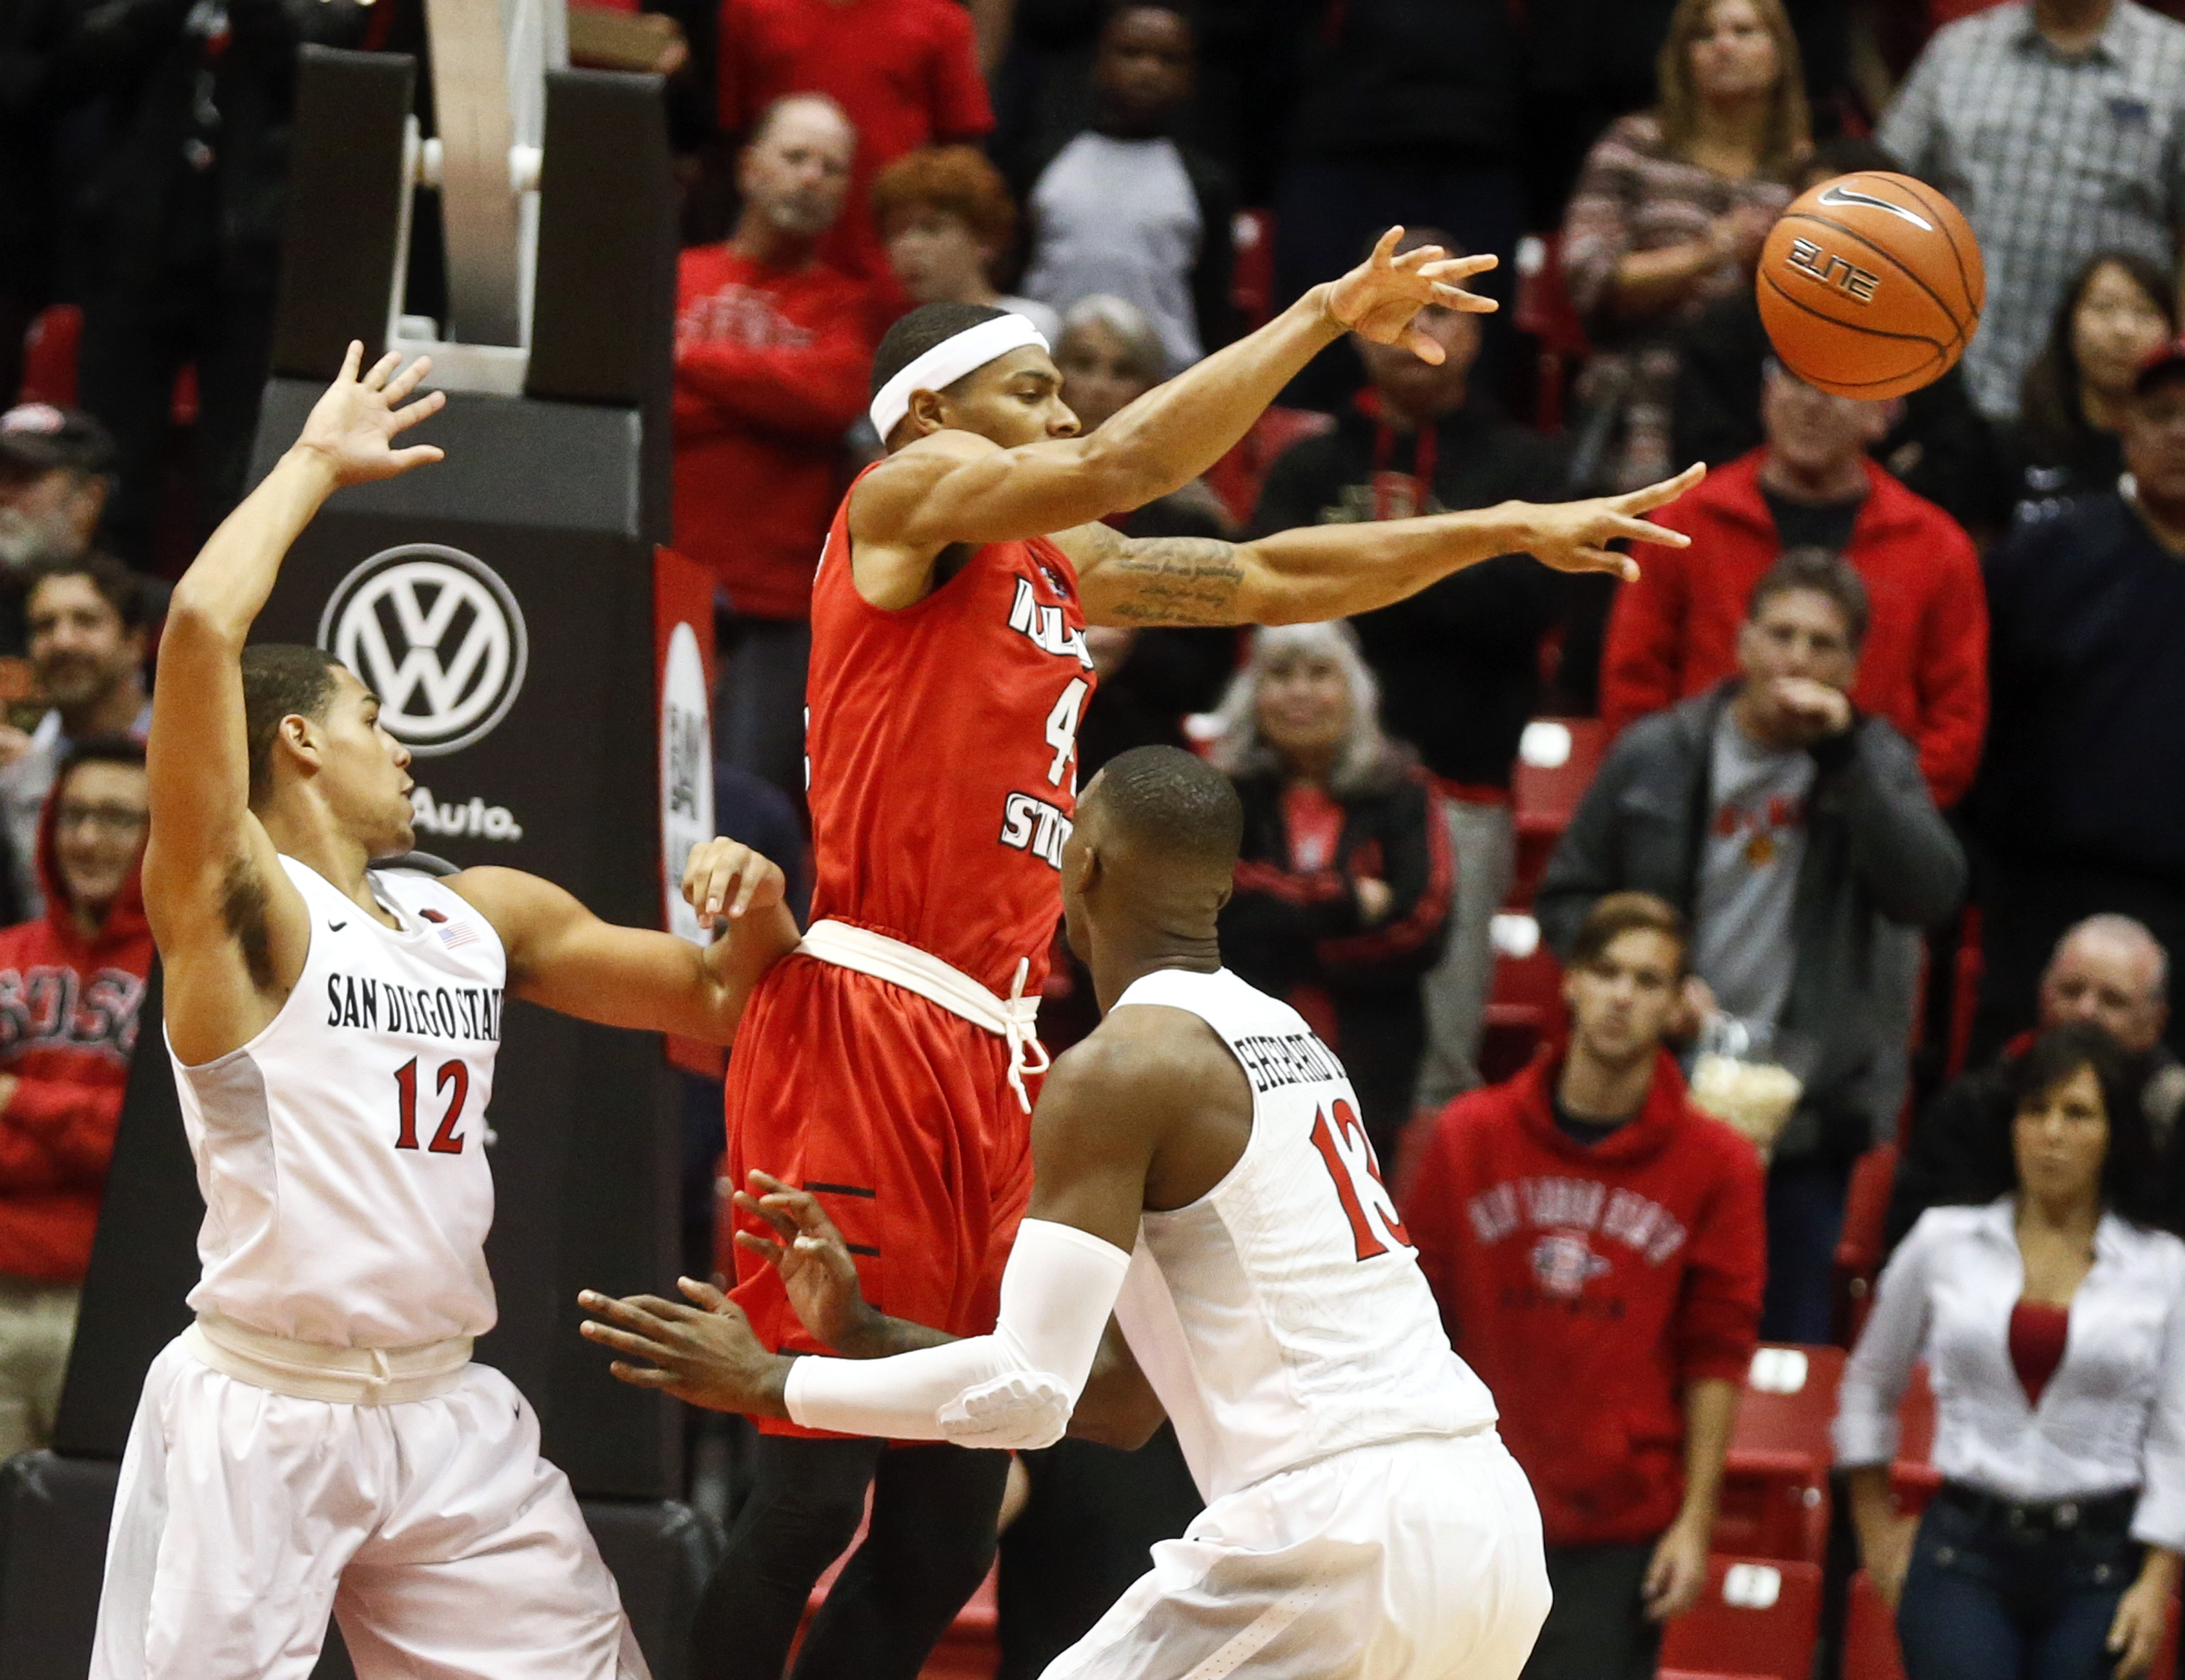 Illinois State guard DeVaughn Akoon-Purcell passes as San Diego State guard Trey Kell, left. and forward Winston Shepard defend in the first half of a NCAA college basketball game Friday, Nov. 13, 2015, in San Diego.  (AP Photo/Lenny Ignelzi)